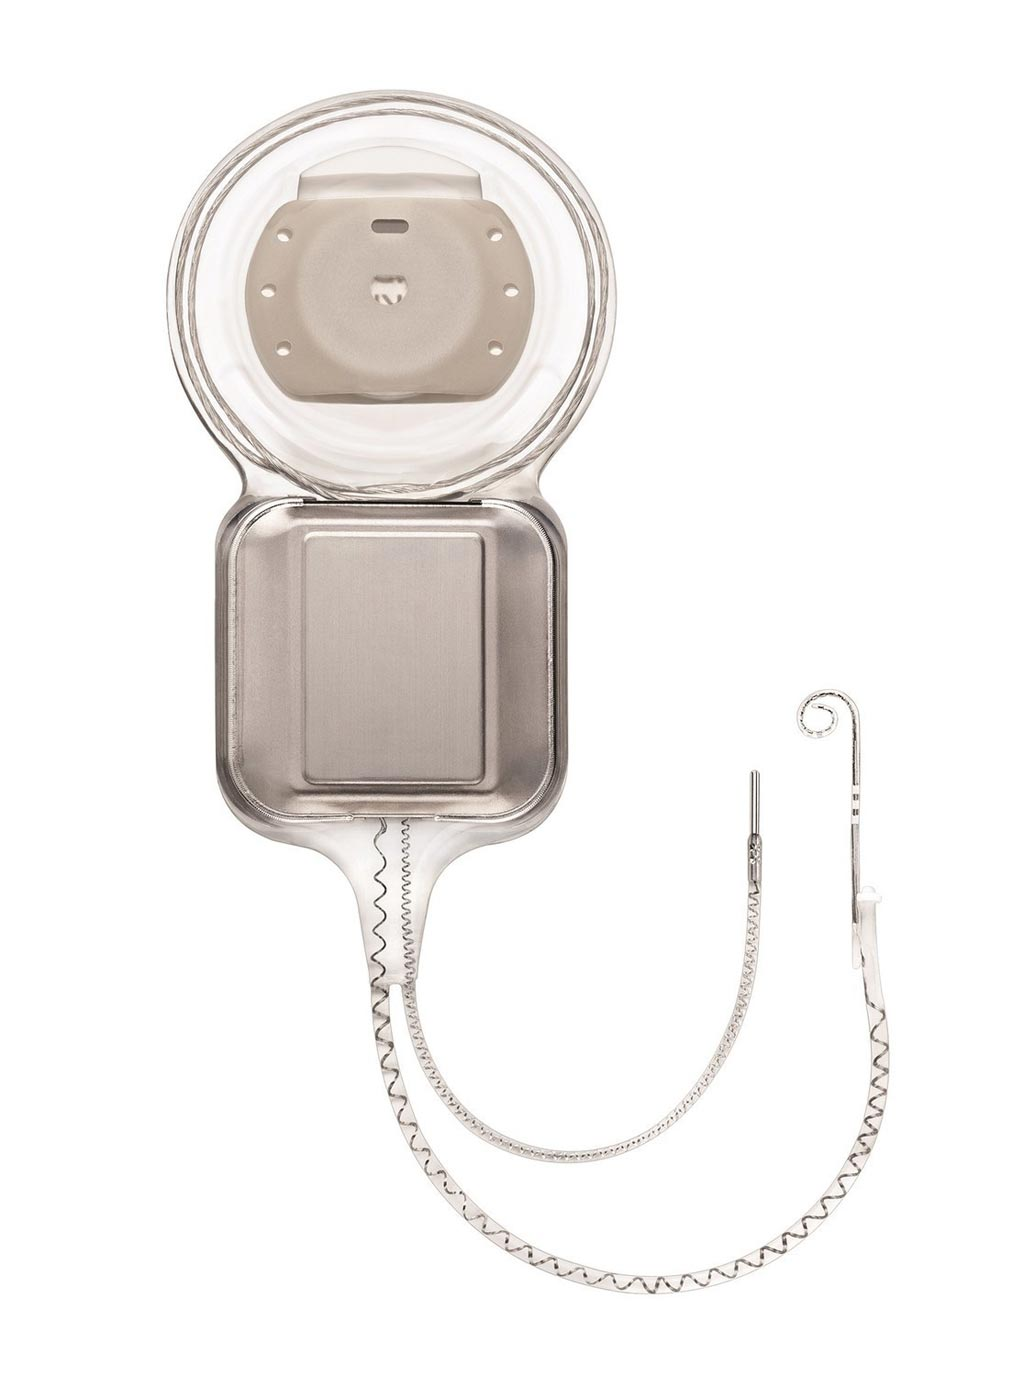 Image: The Nucleus Profile Plus Series cochlear implant (Photo courtesy of Cochlear).